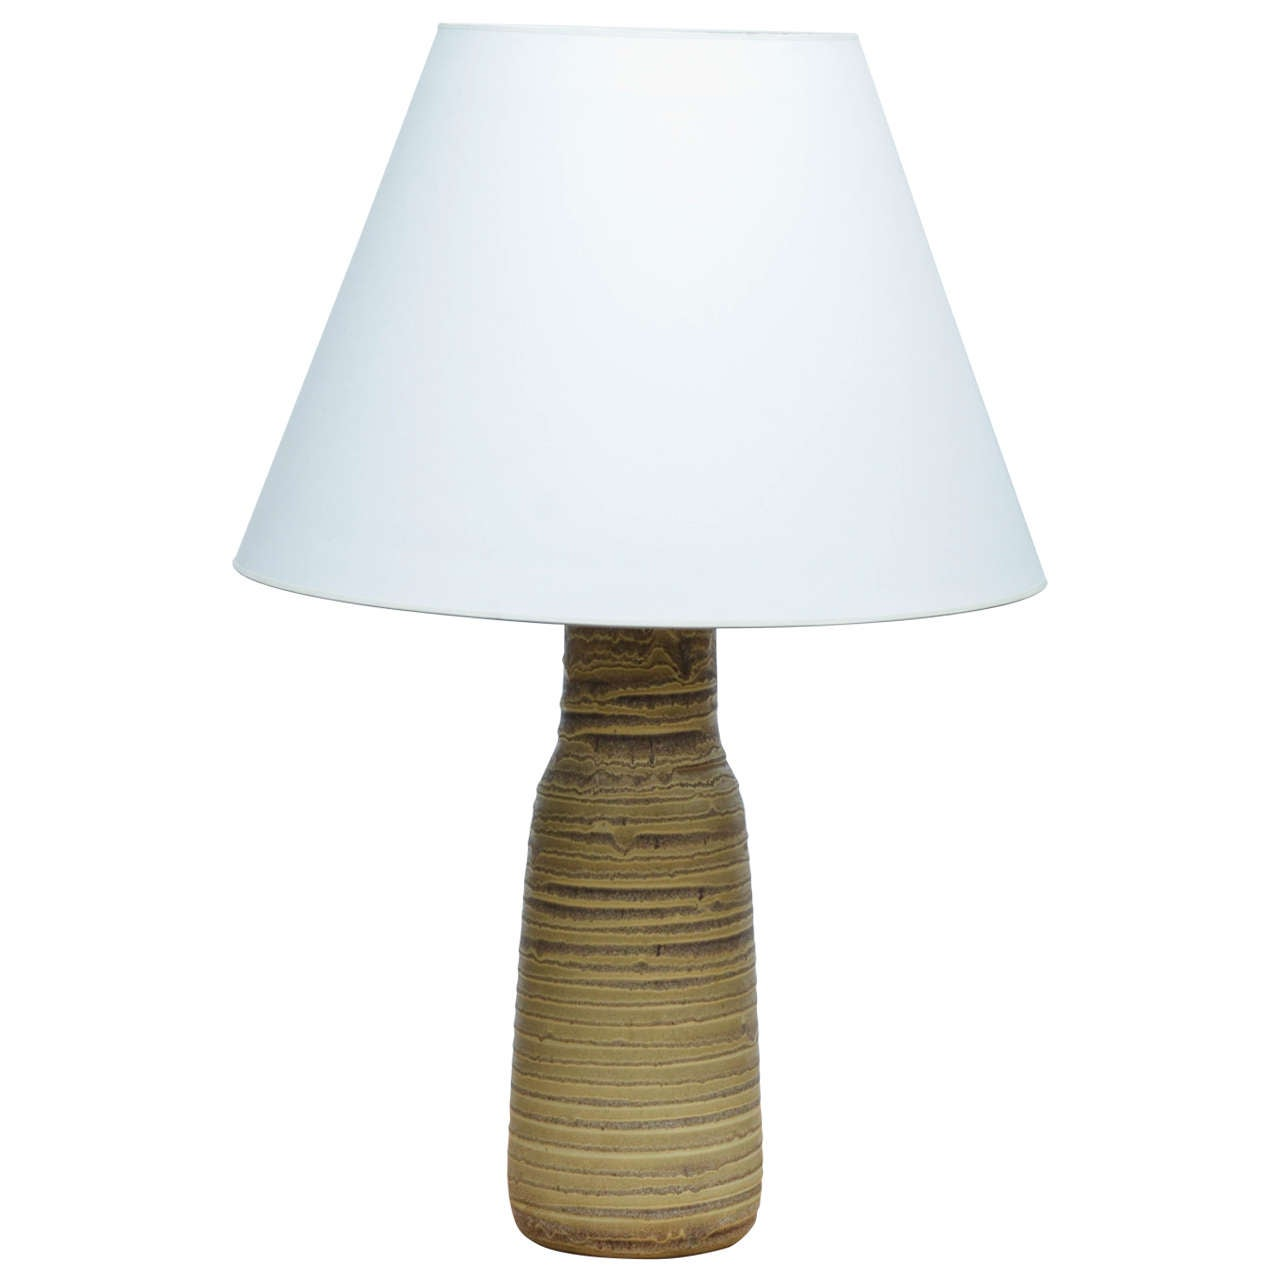 Green and Brown Ceramic Table Lamp by Design Technics